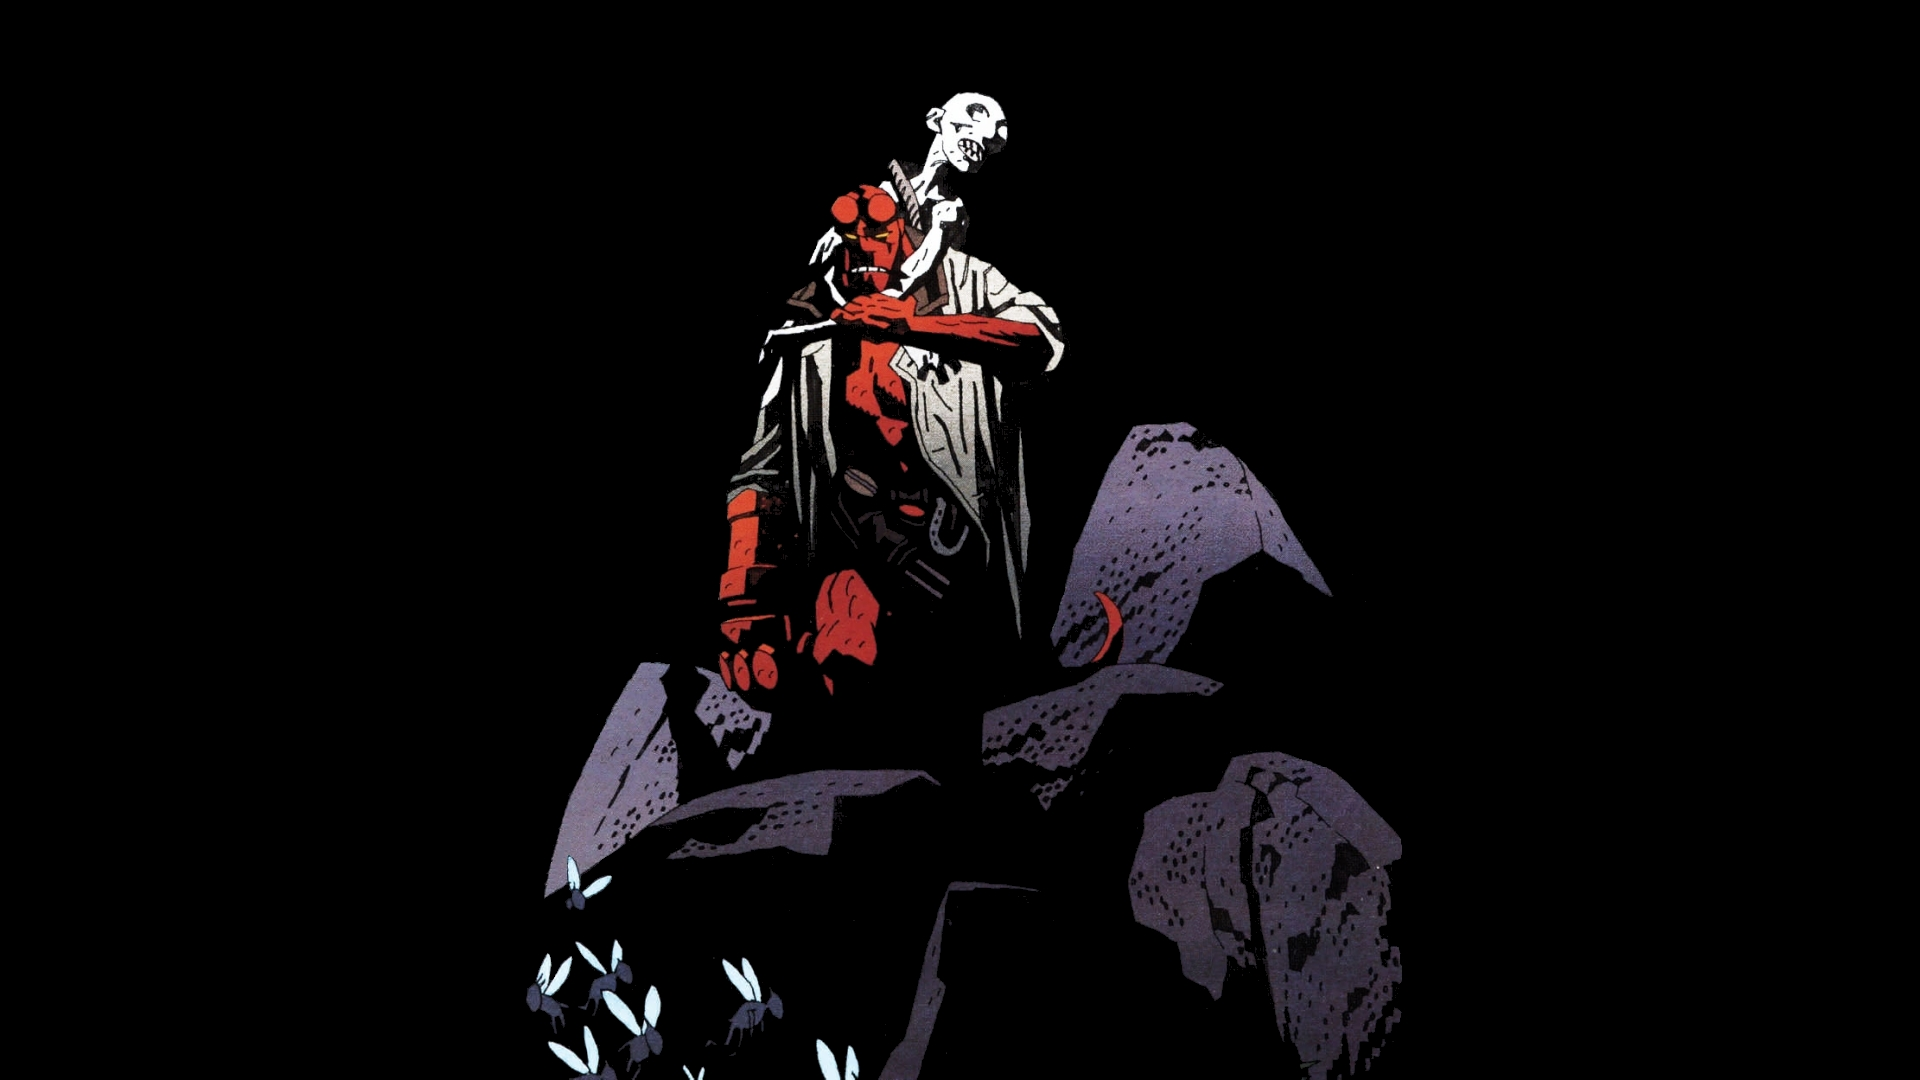 A Massive Mignola Wallpaper Gallery 1920x1080 That I Have Compiled